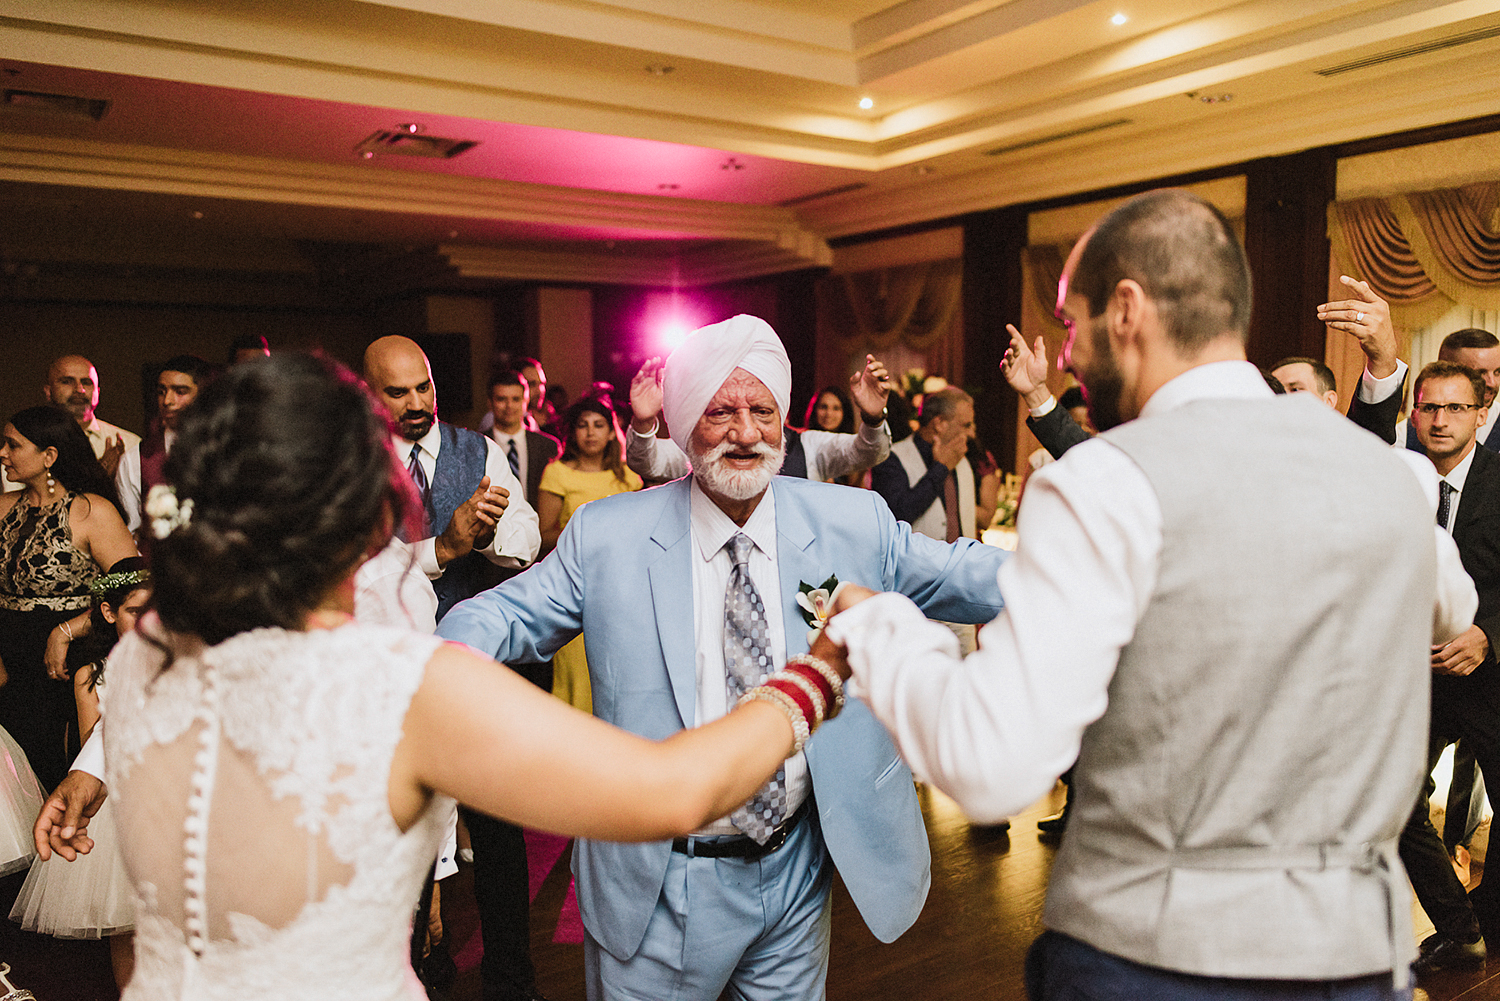 Toronto-Photojournalism-wedding-photographers-3B-Photography-Candid-Documentary-Film-Photography-Analog-Ontario-Extremely-intimate-and-quiet-moment-between-bride-and-groom-dancing-with-grandpa.jpg